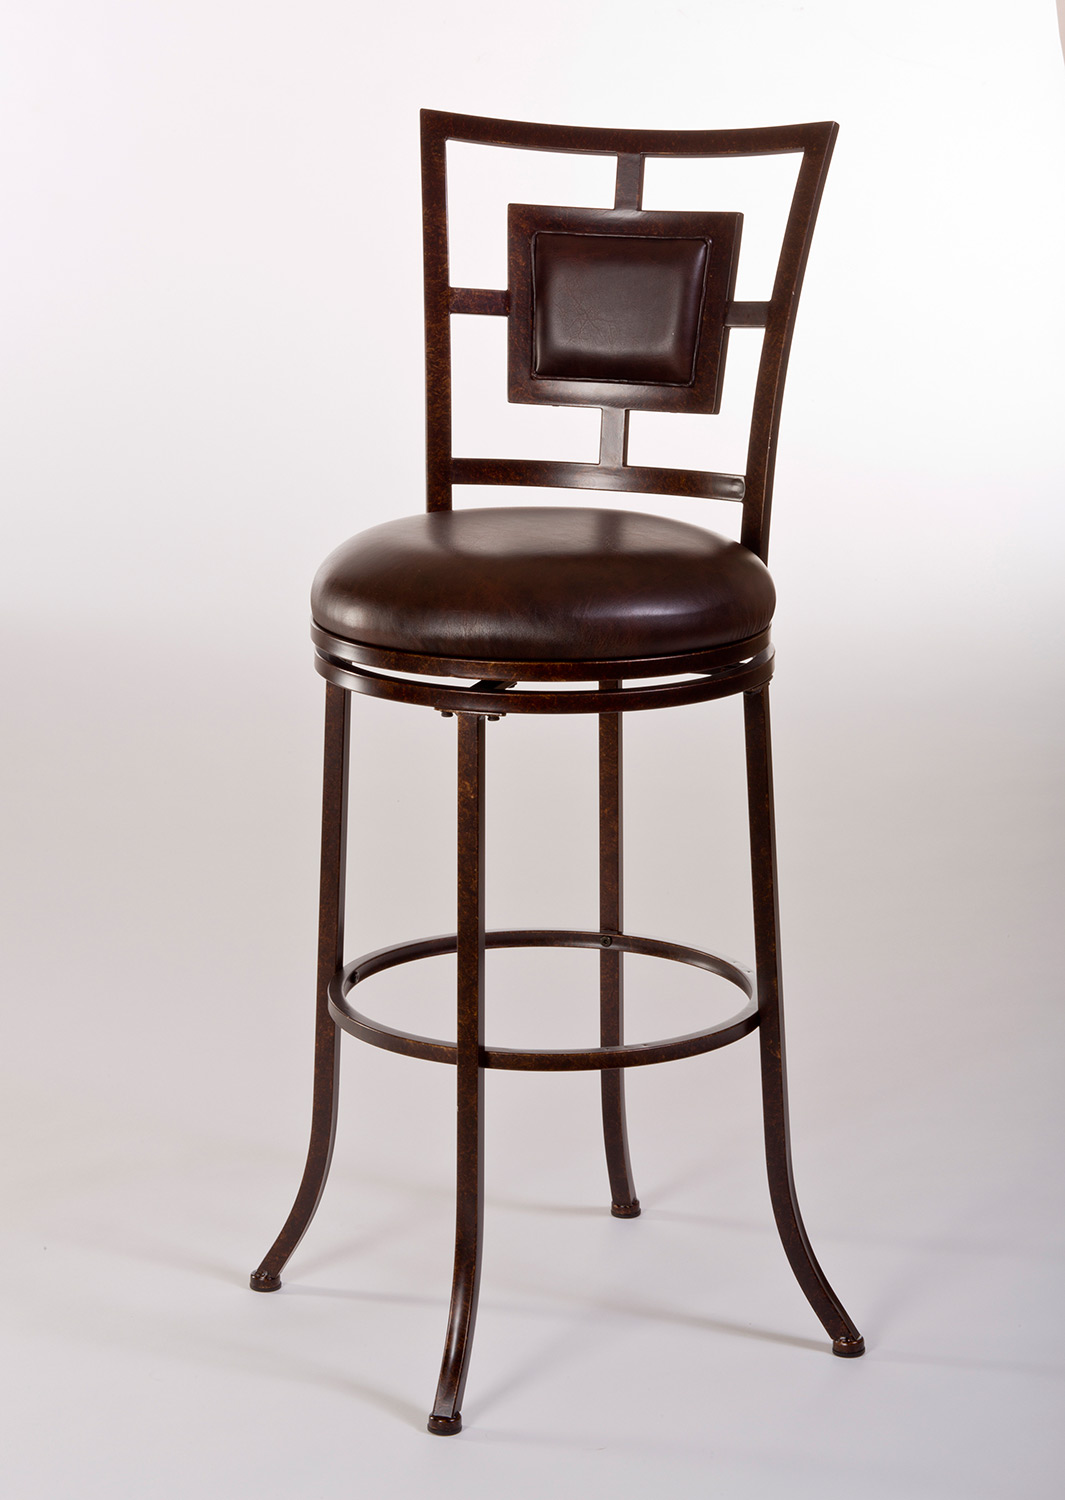 Hillsdale Foxholm Swivel Counter Stool - Antique Copper/Dark Brown PU